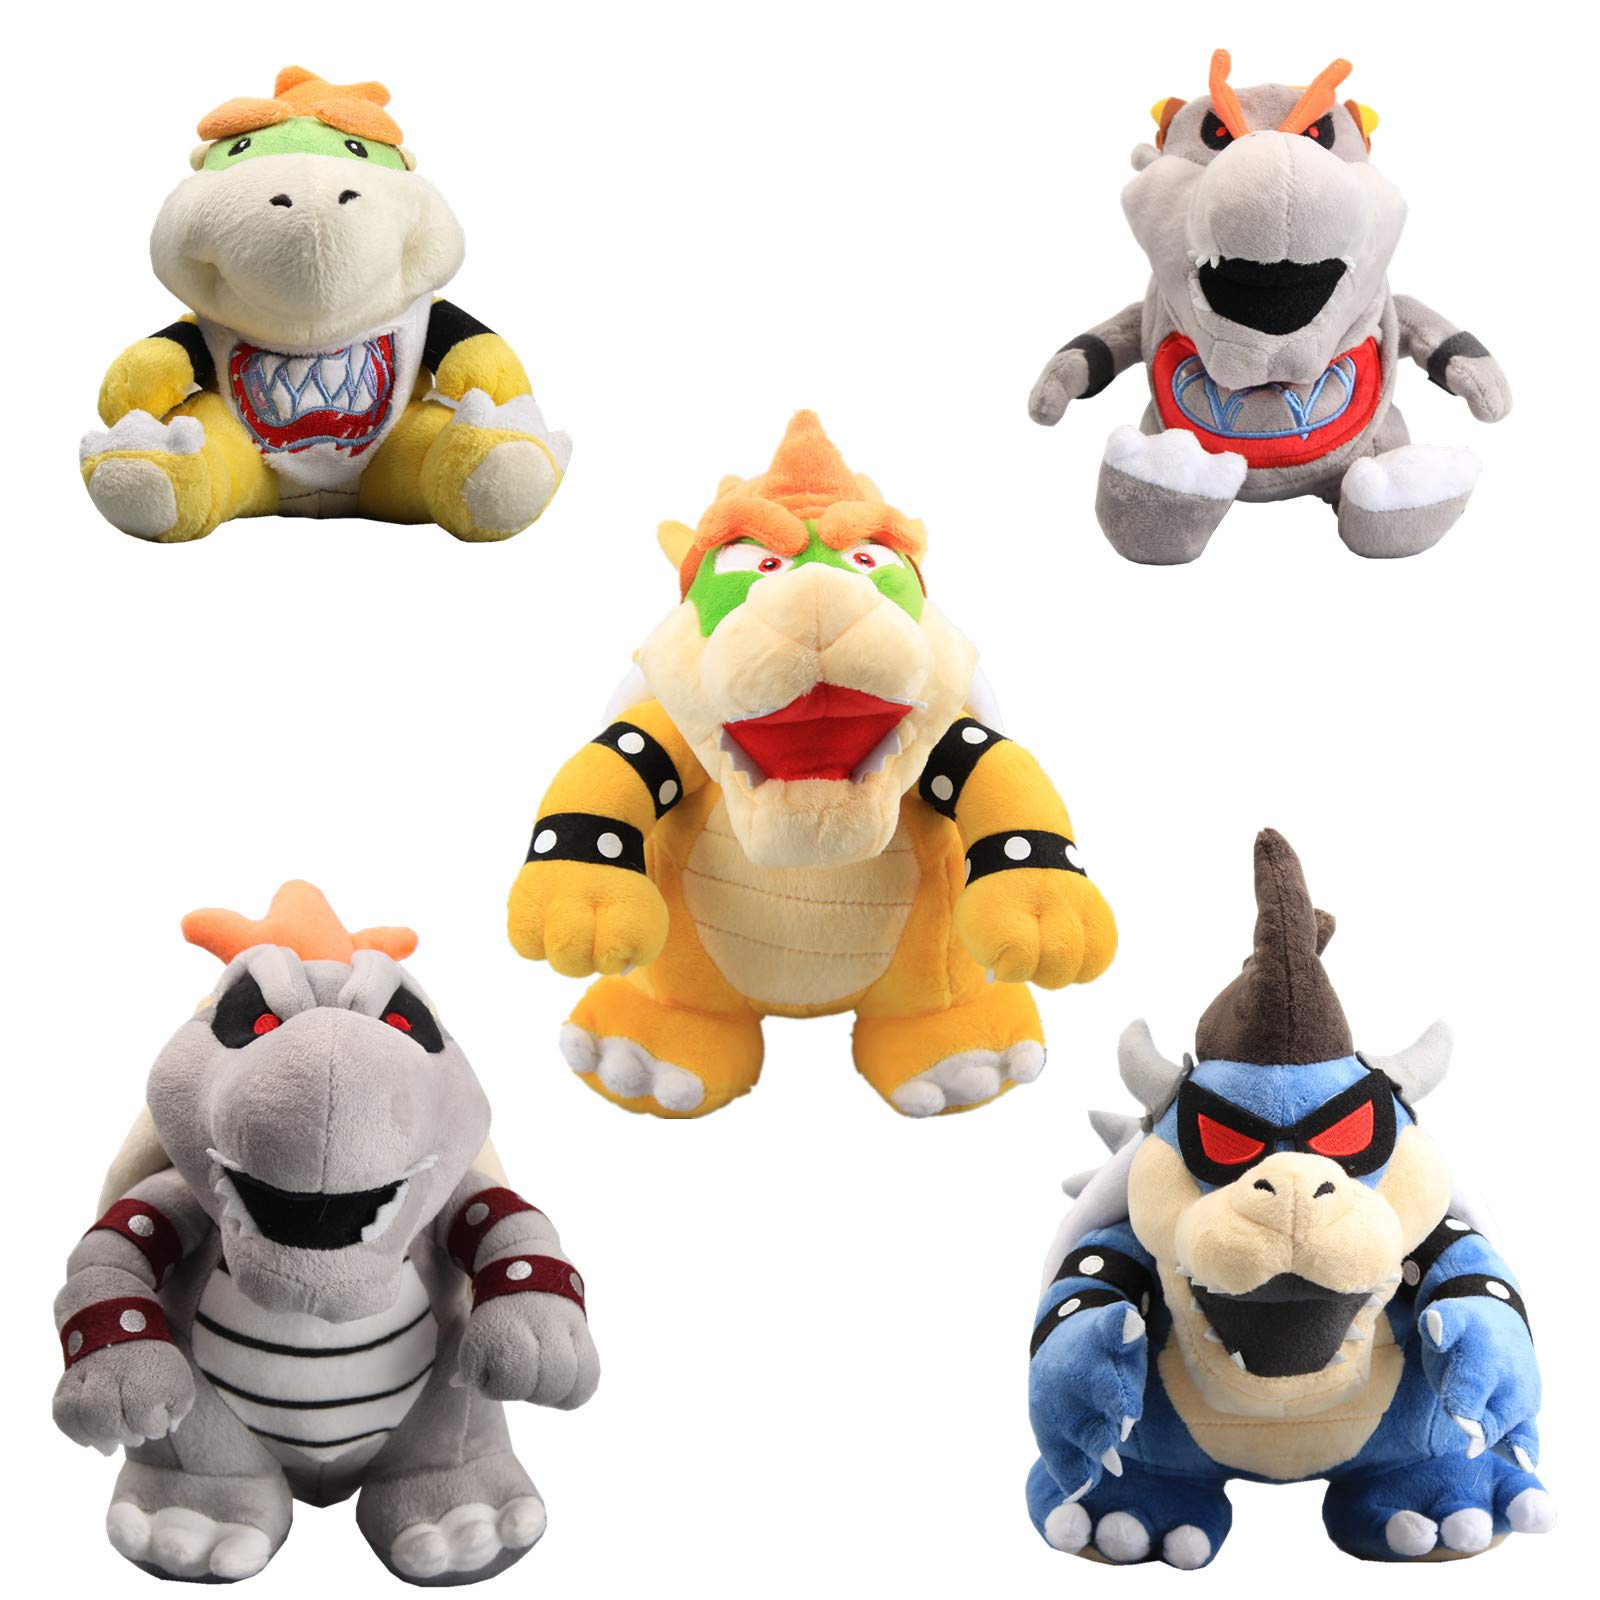 uiuoutoy Super Mario Bros. King Bowser & Dry Bowser & Dark Bowser & Bowser Jr & Dry Bowser Jr Plush 10'' Set of 5 pcs by uiuoutoy